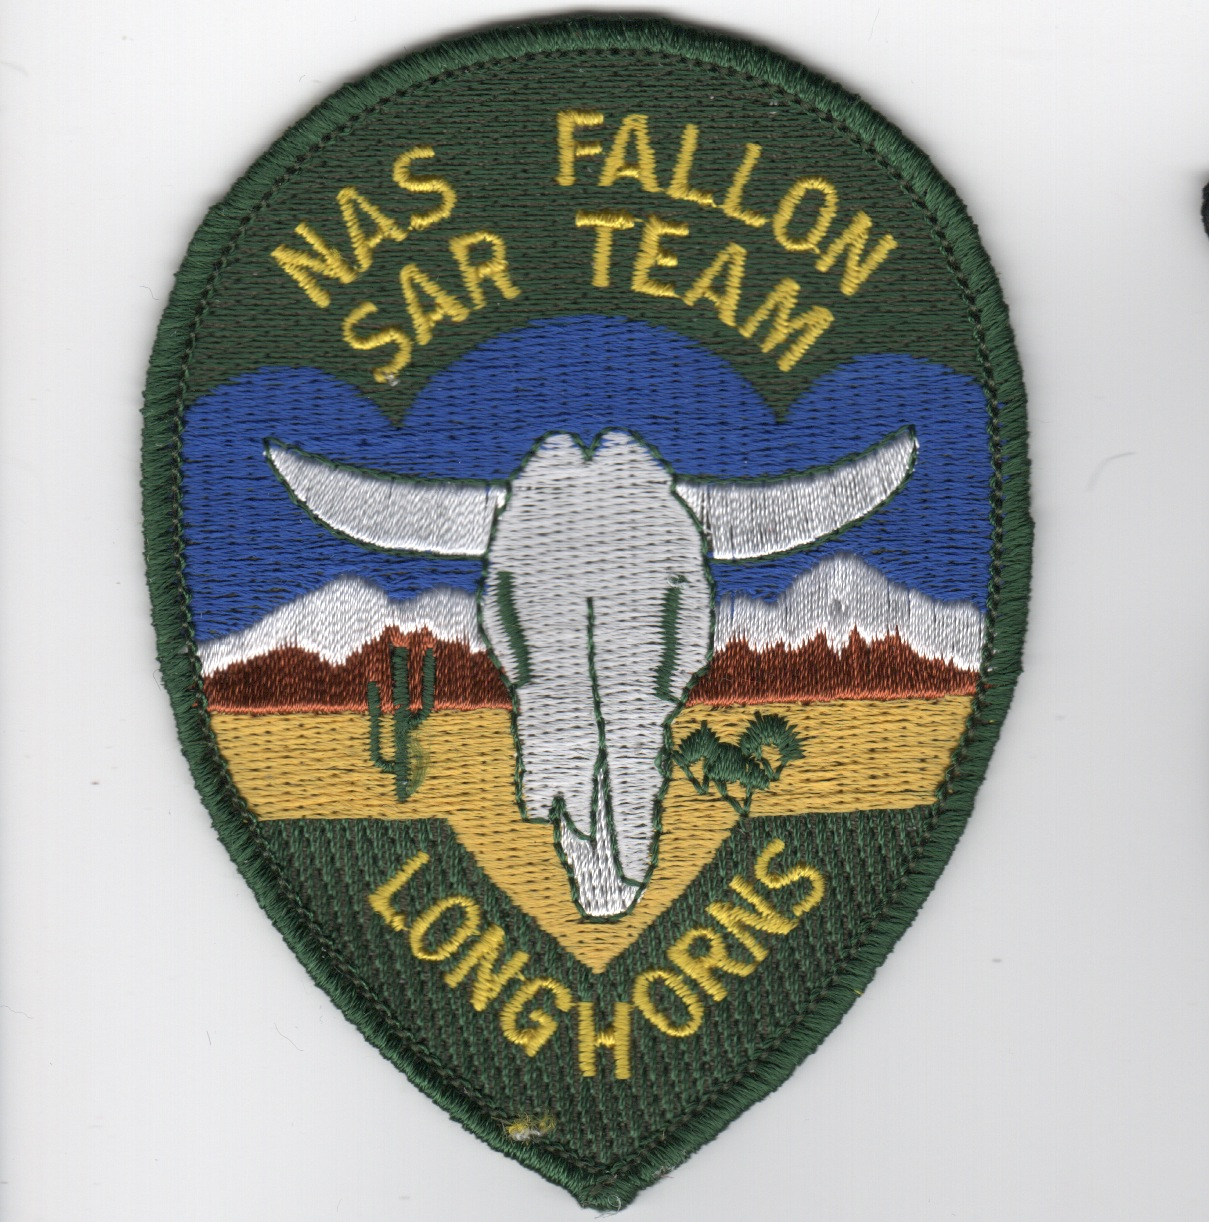 NAS Fallon SAR Team Patch